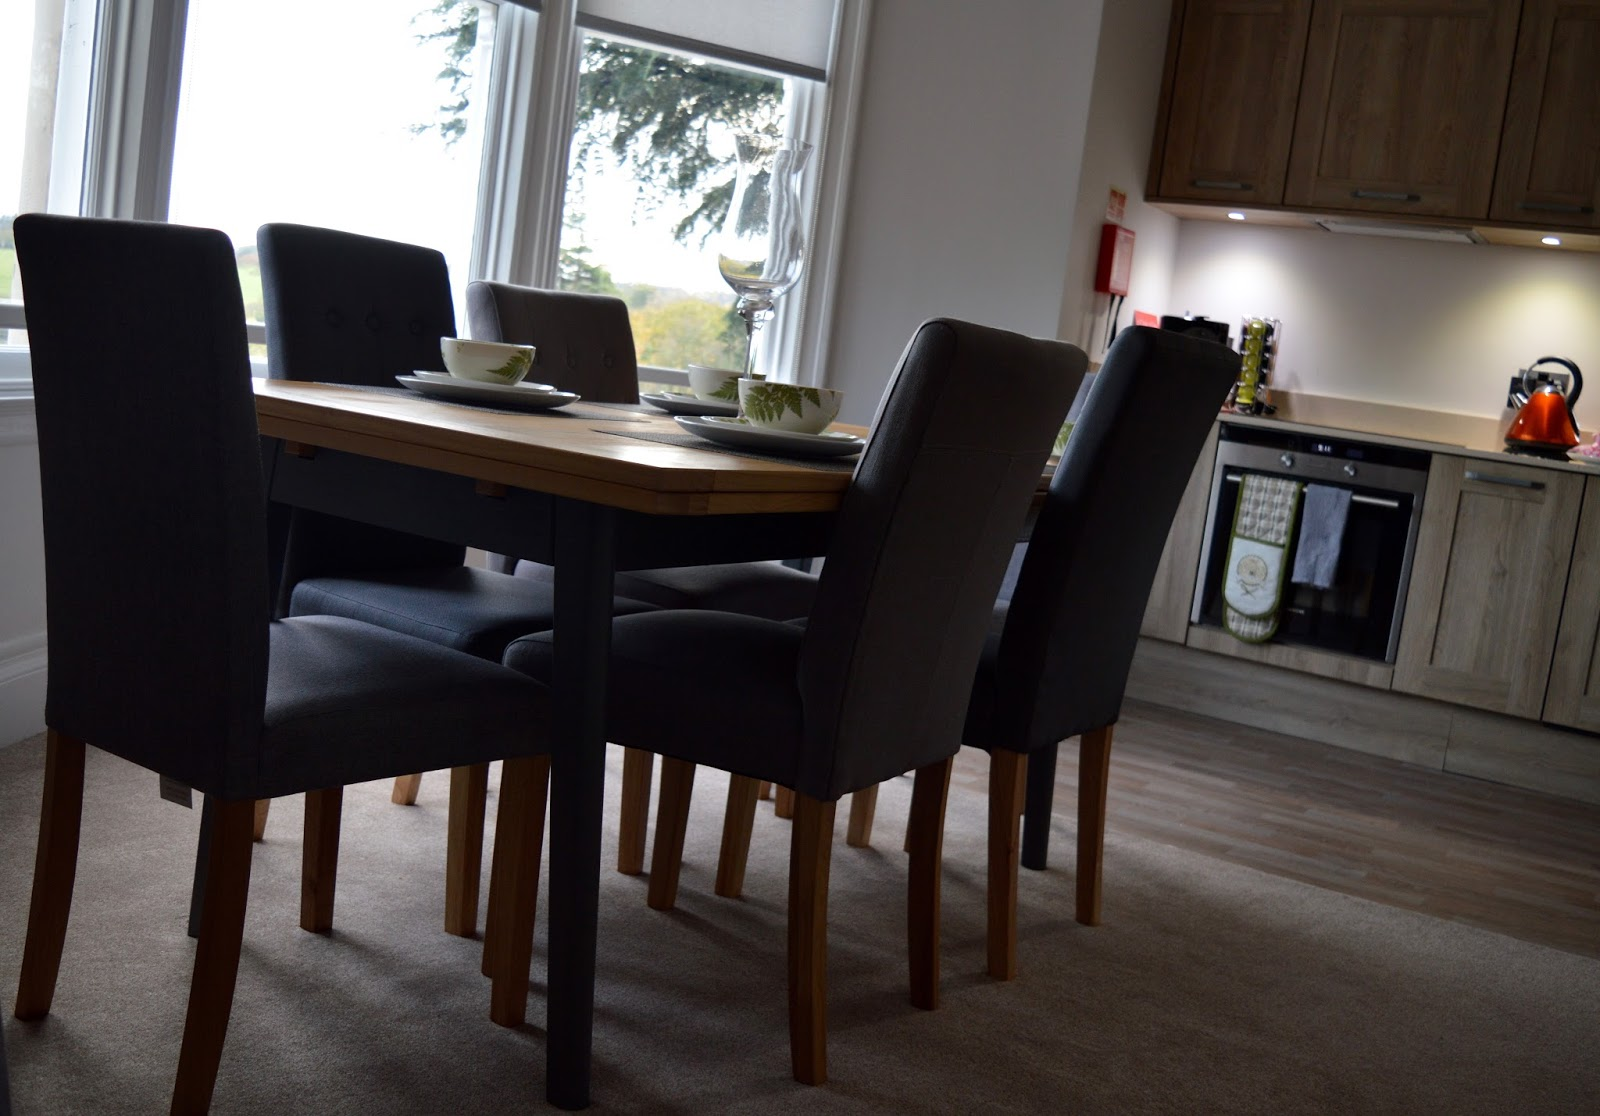 We review One Frenchgate House - A Luxury Serviced 4 Bedroom Apartment in Richmond, North Yorkshire. Available to rent for holidays and short breaks - dining and kitchen area